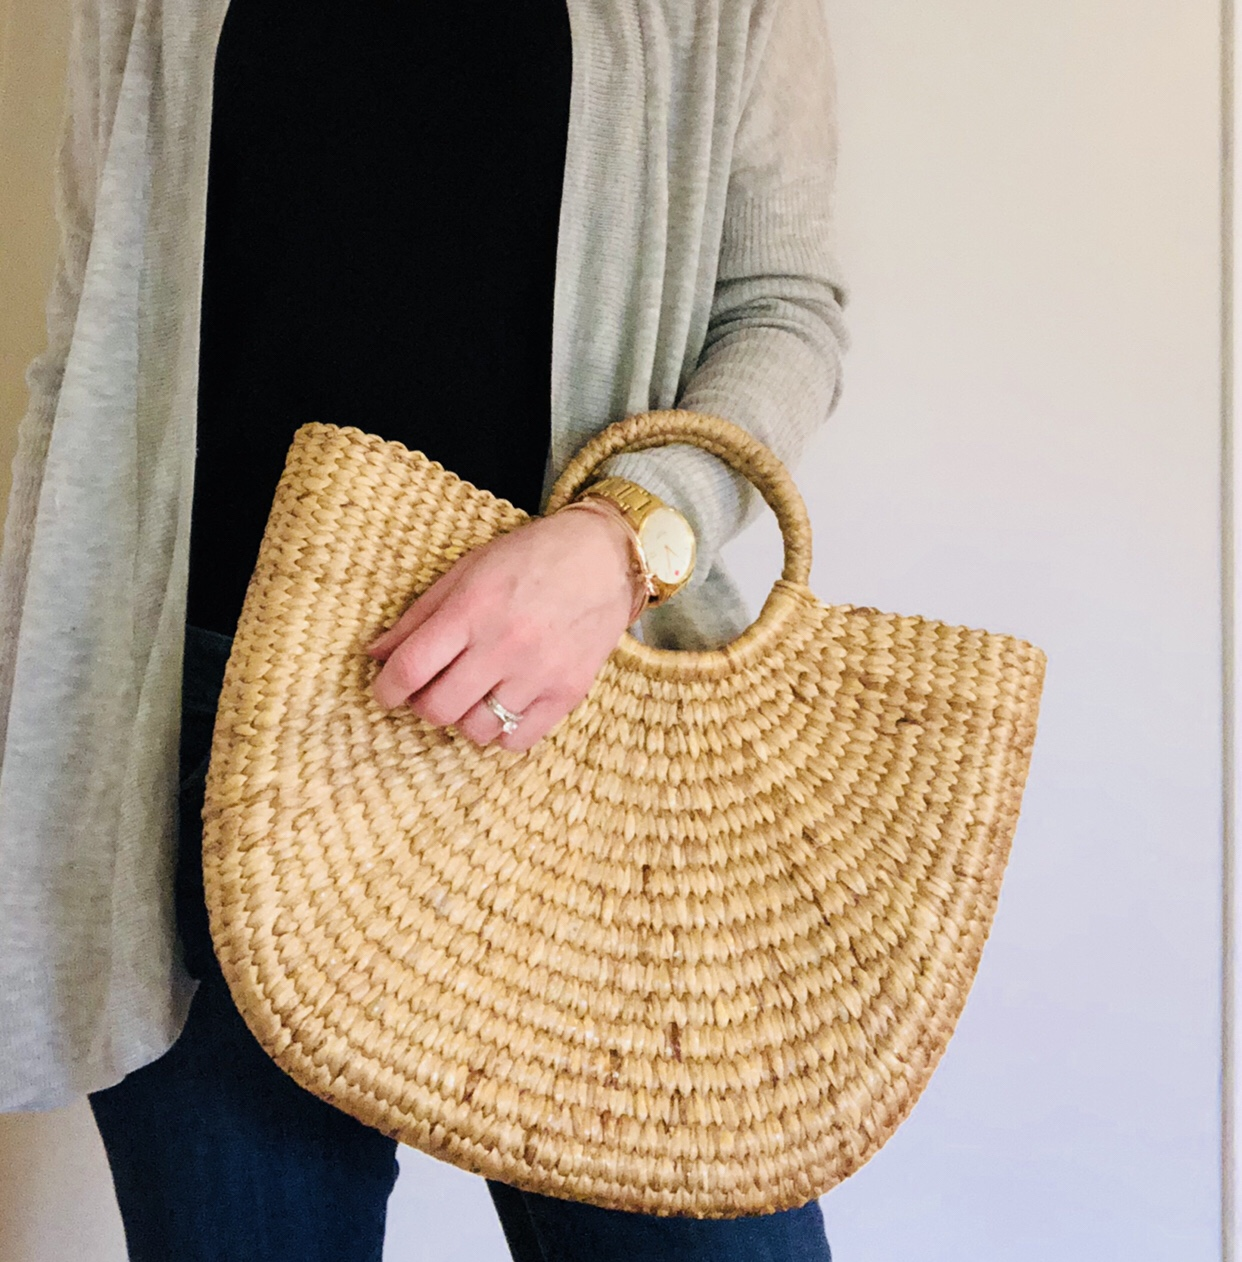 straw handbag with grey sweater, black top and jeans